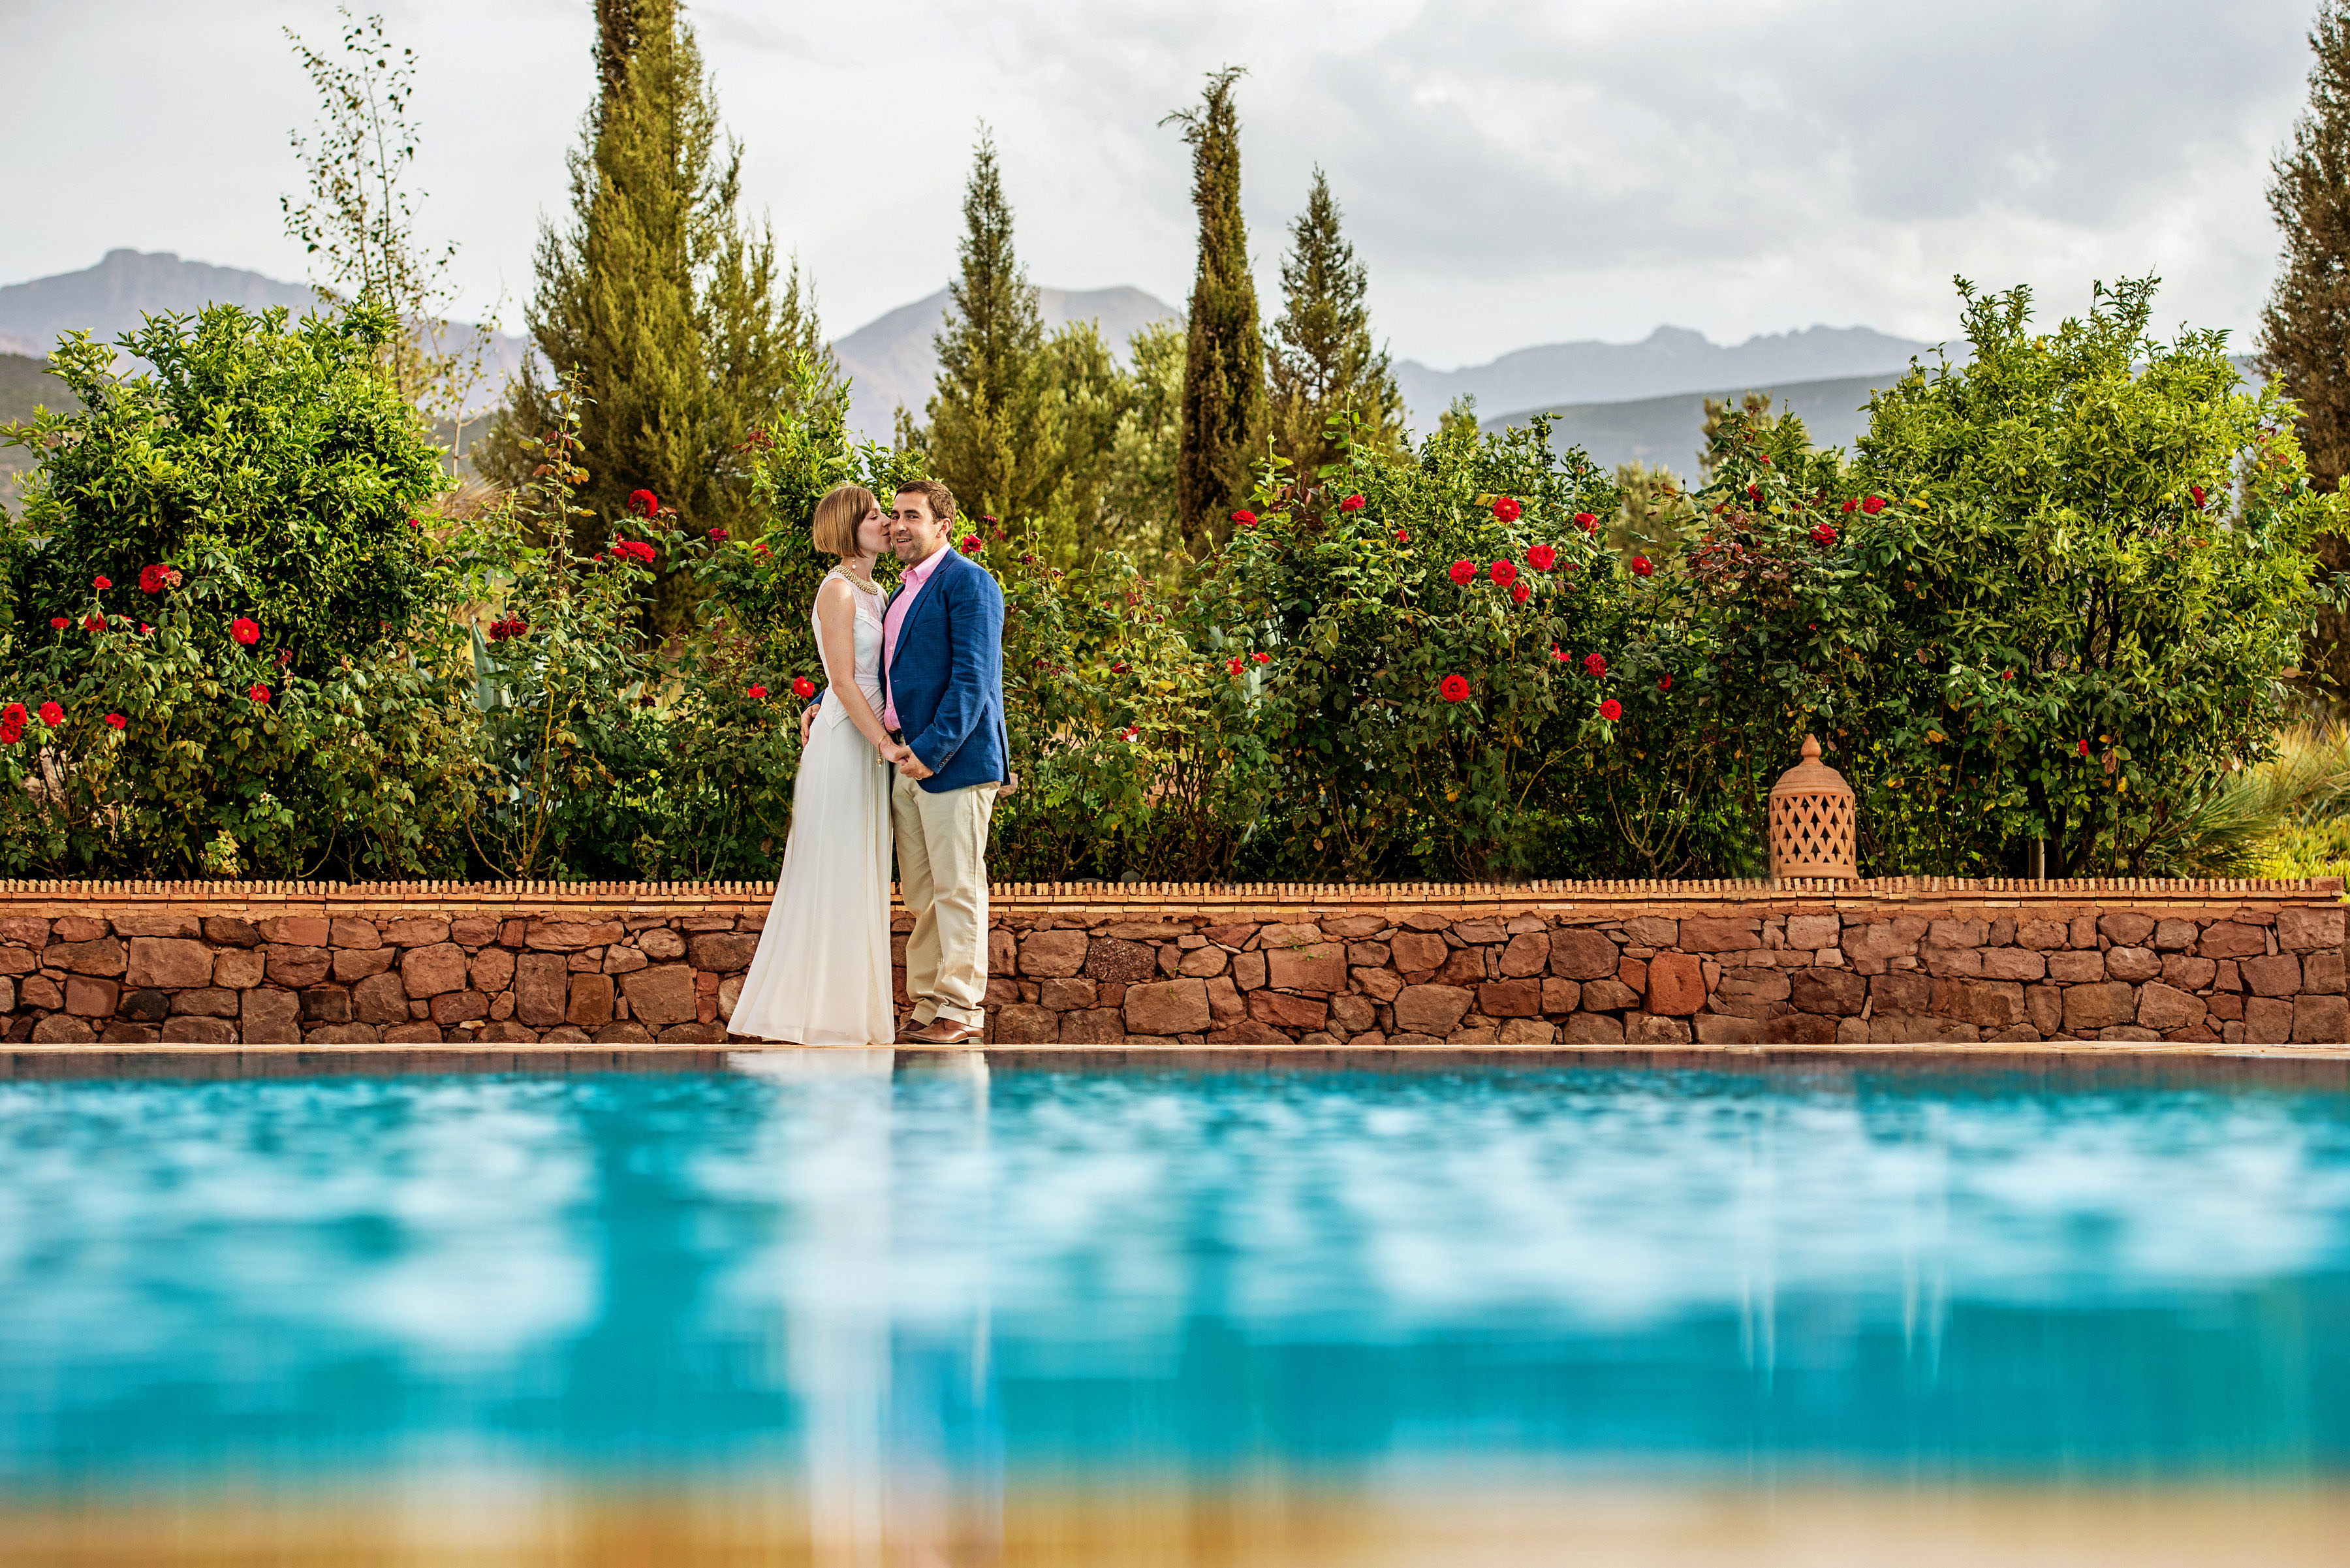 Morocco destination wedding, couple by pool